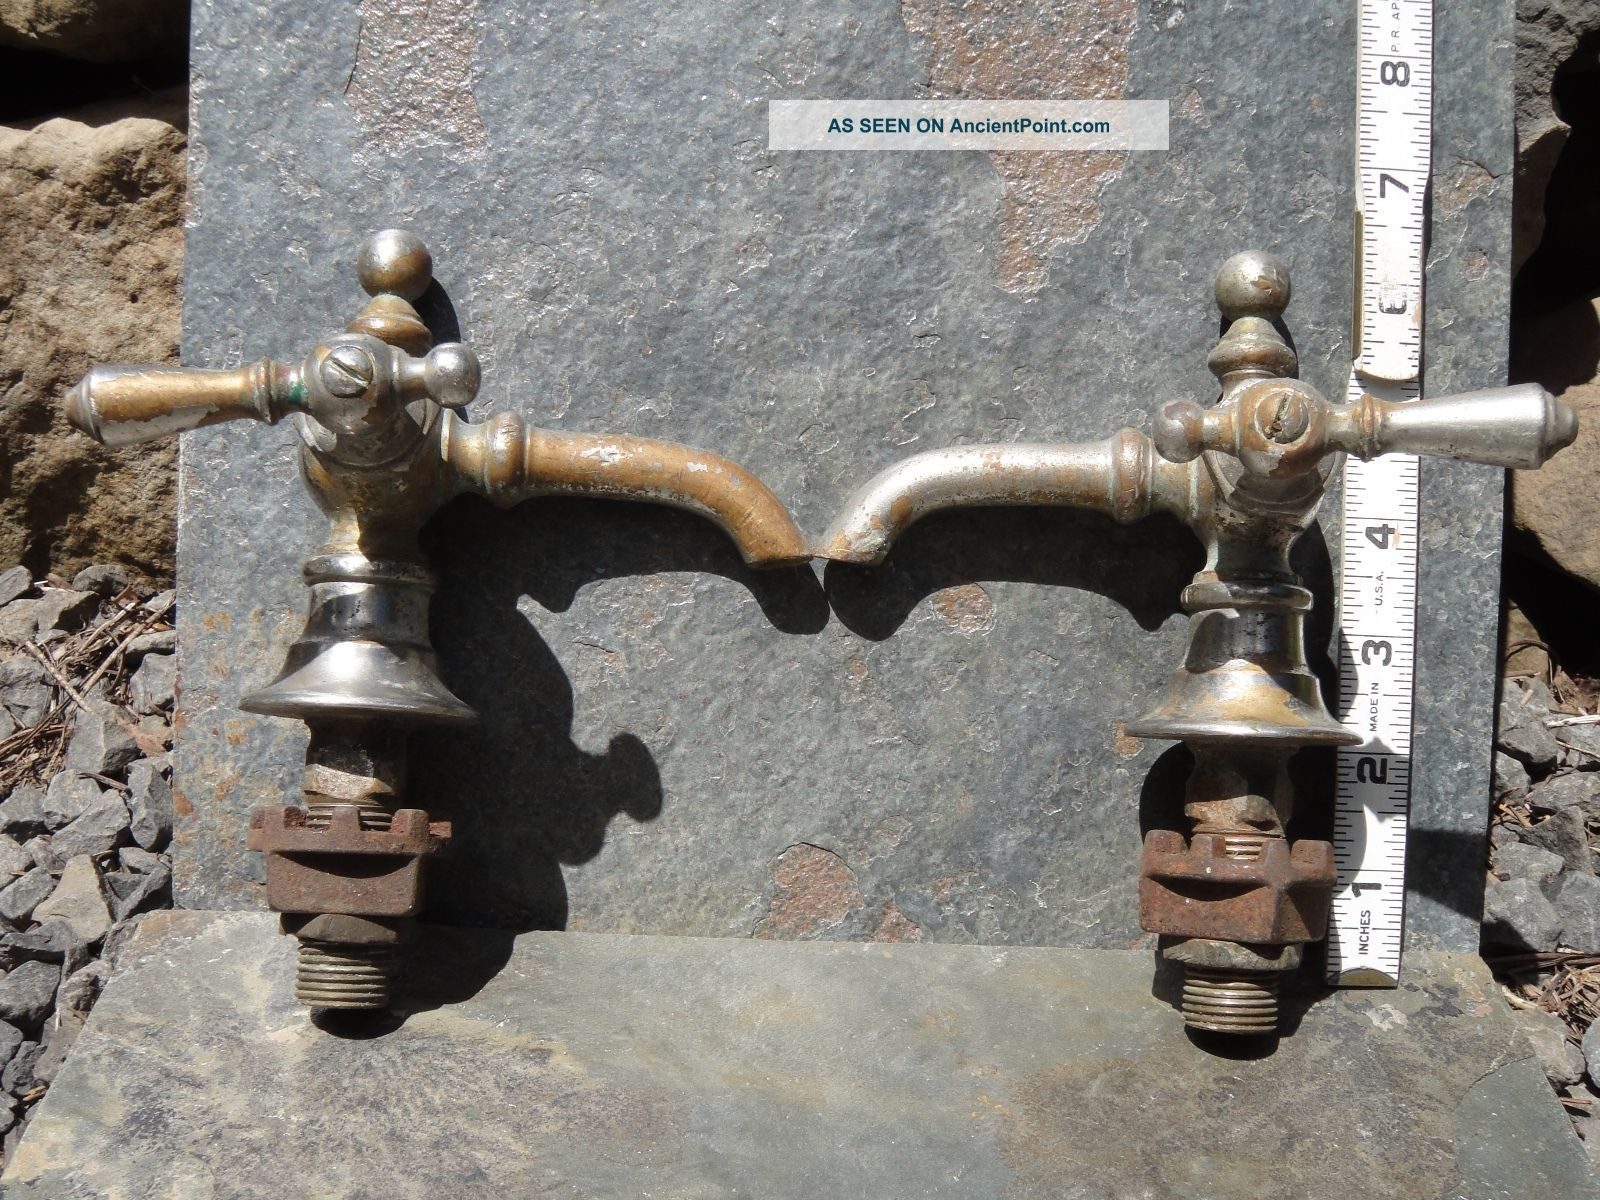 Faucets Brass Chromed Ornate Hot & Cold For Sink Or Tub Antique,  Vintage Plumbing photo